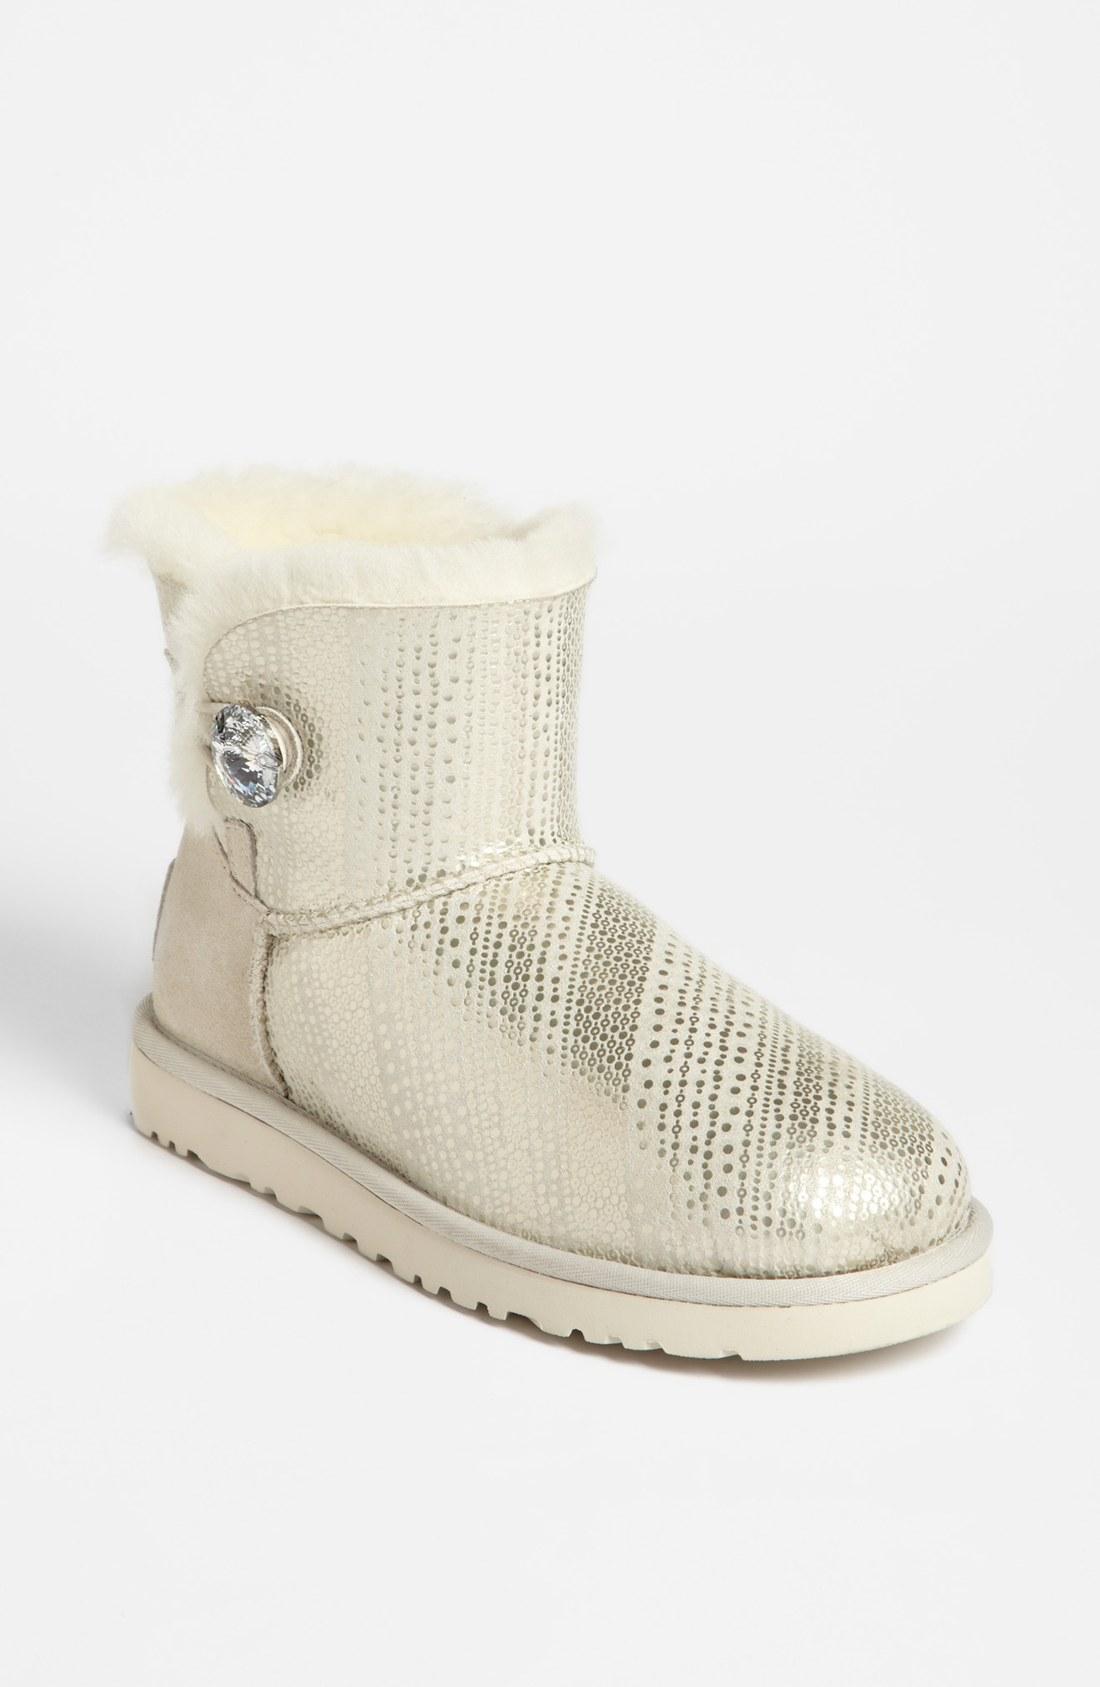 ugg mini bailey swarovski crystal button bling boot in. Black Bedroom Furniture Sets. Home Design Ideas